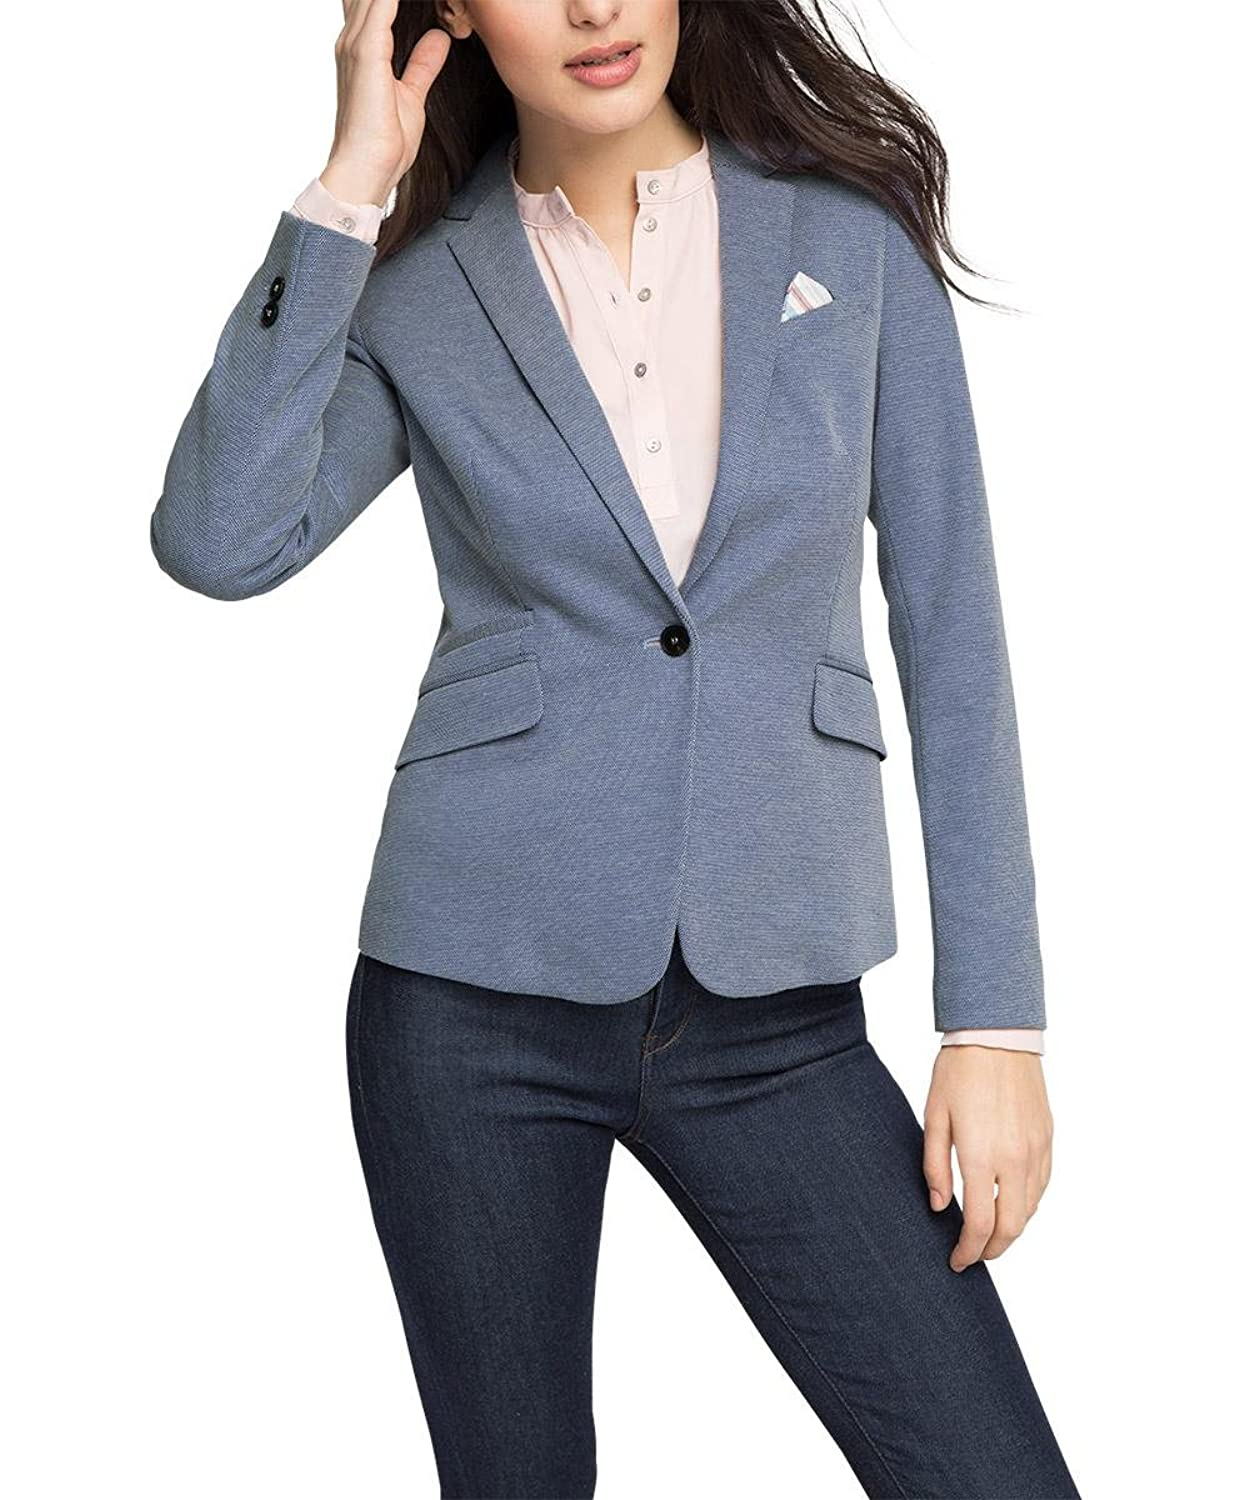 ESPRIT Collection Damen Blazer 036eo1g016-Baumwoll-Mix